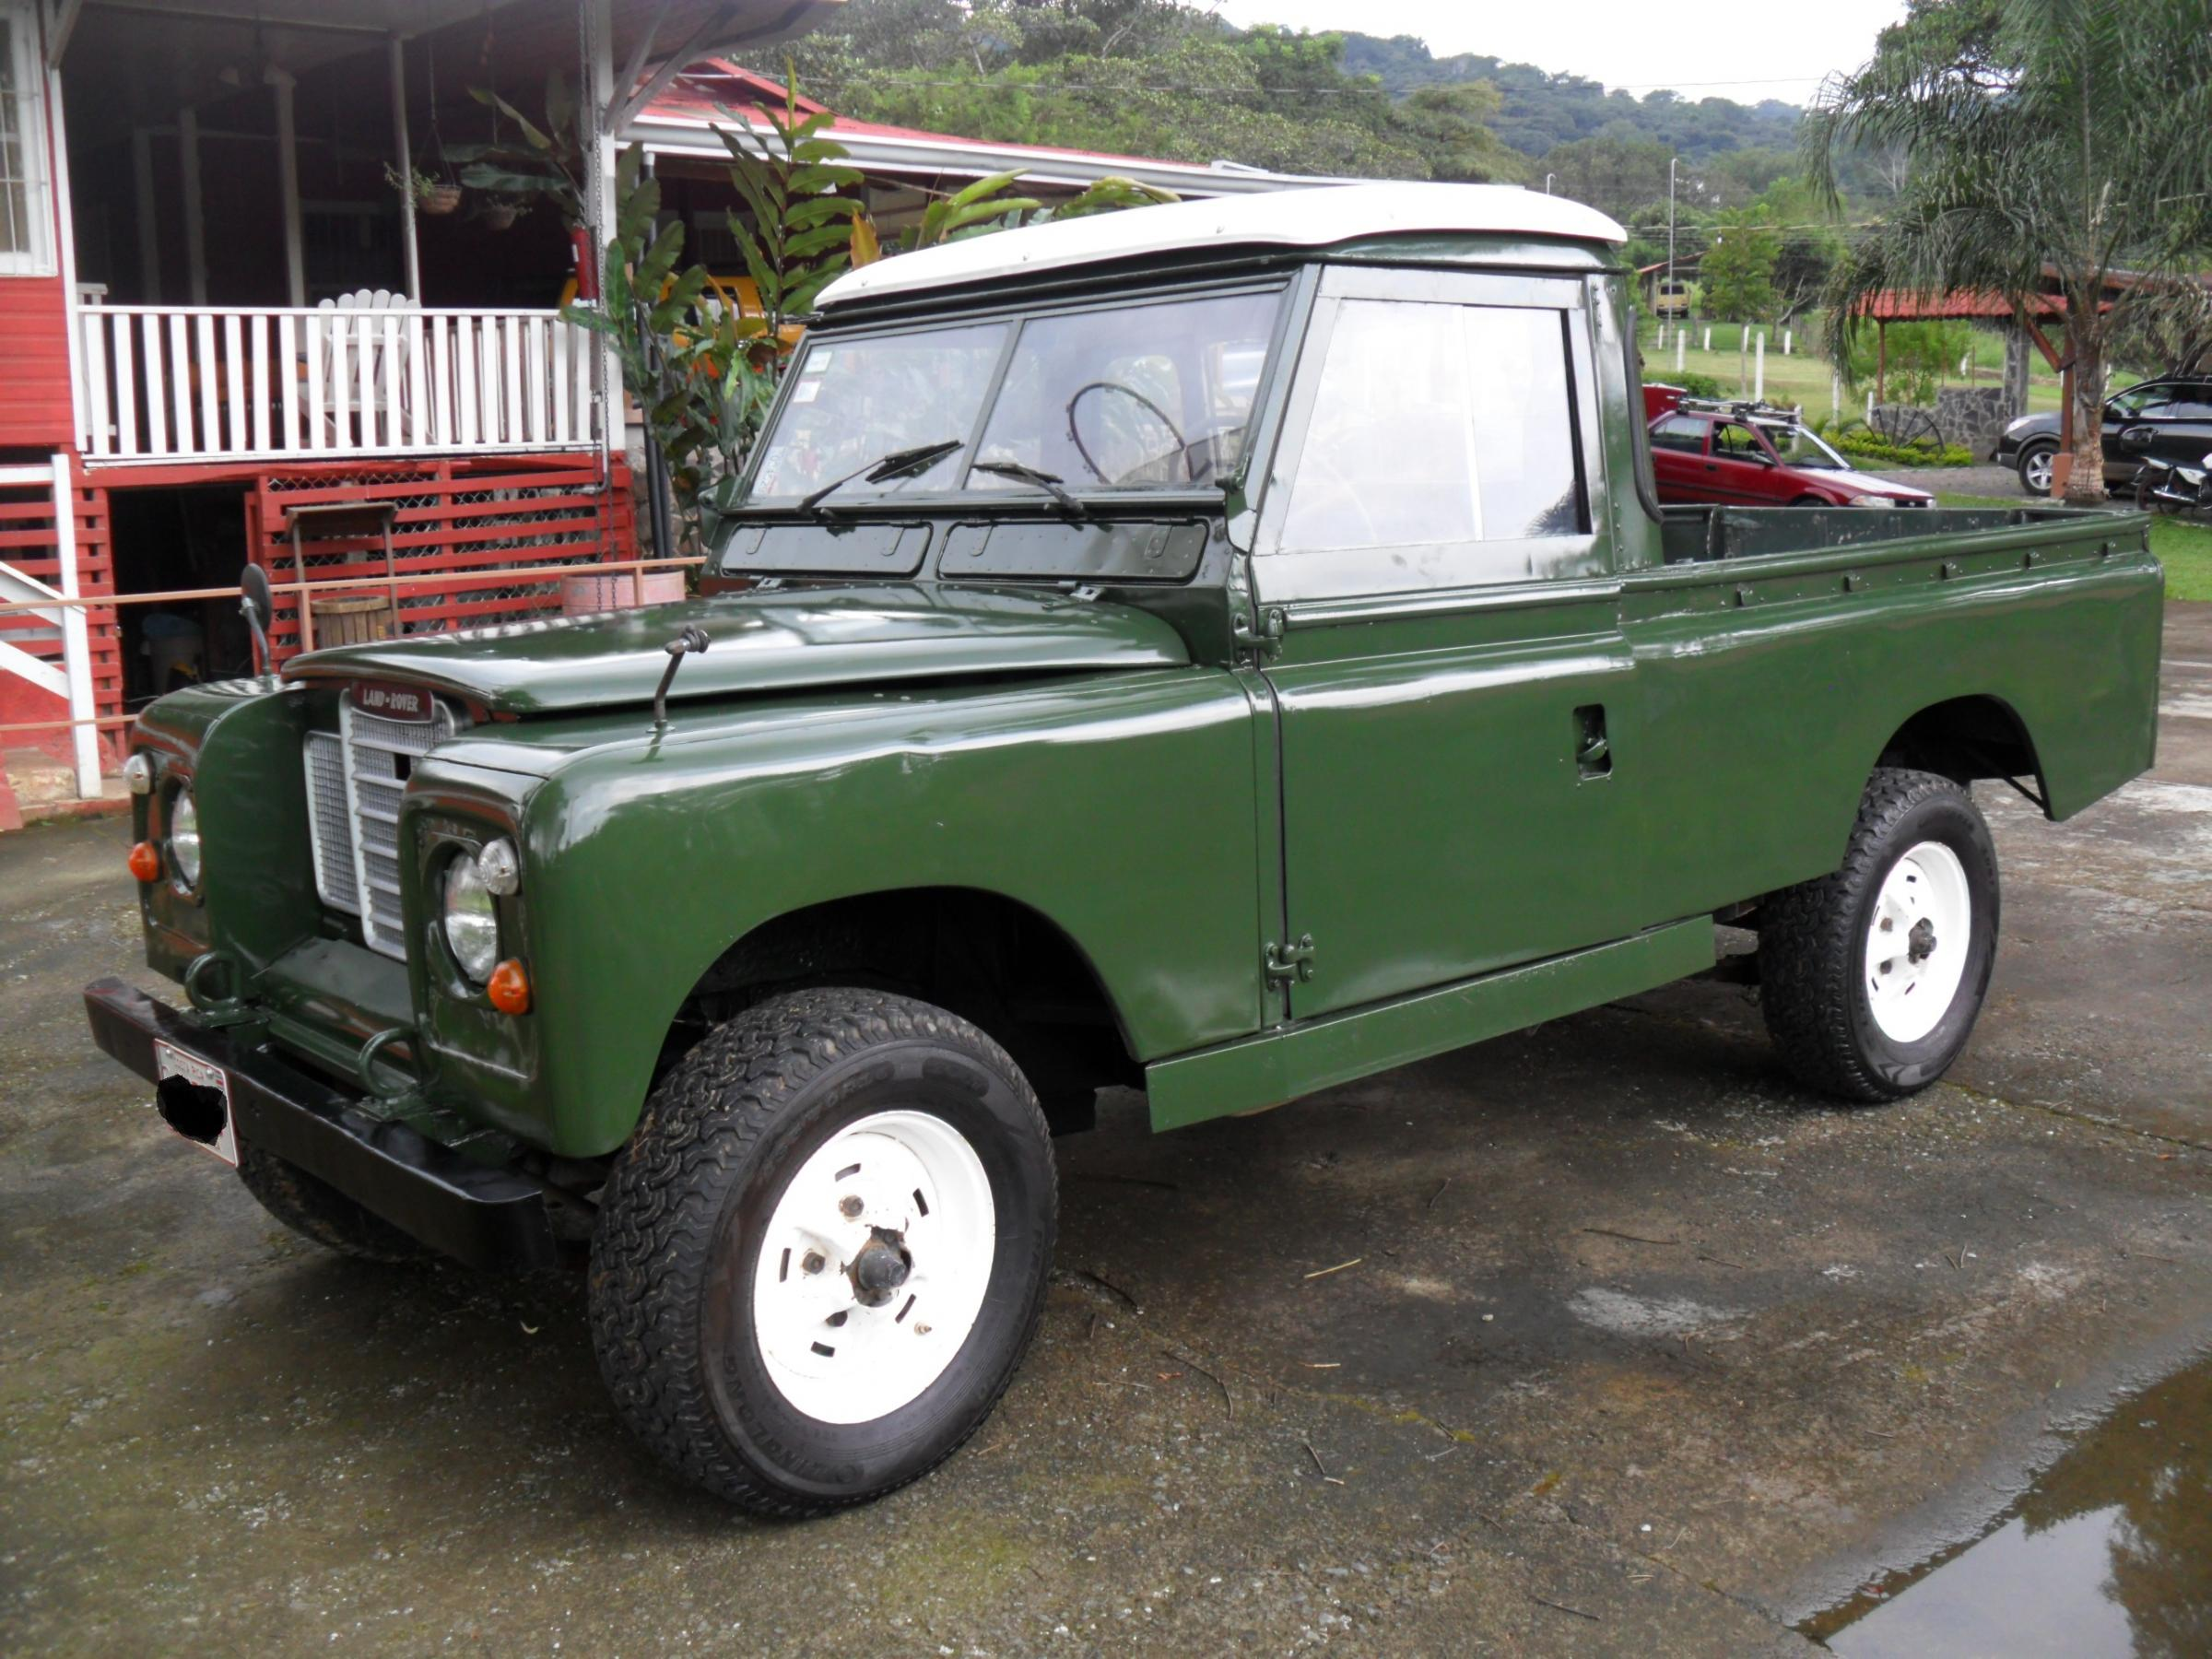 1969 Diesel 109 Series II Land Rover Pick Up Truck Land Rover